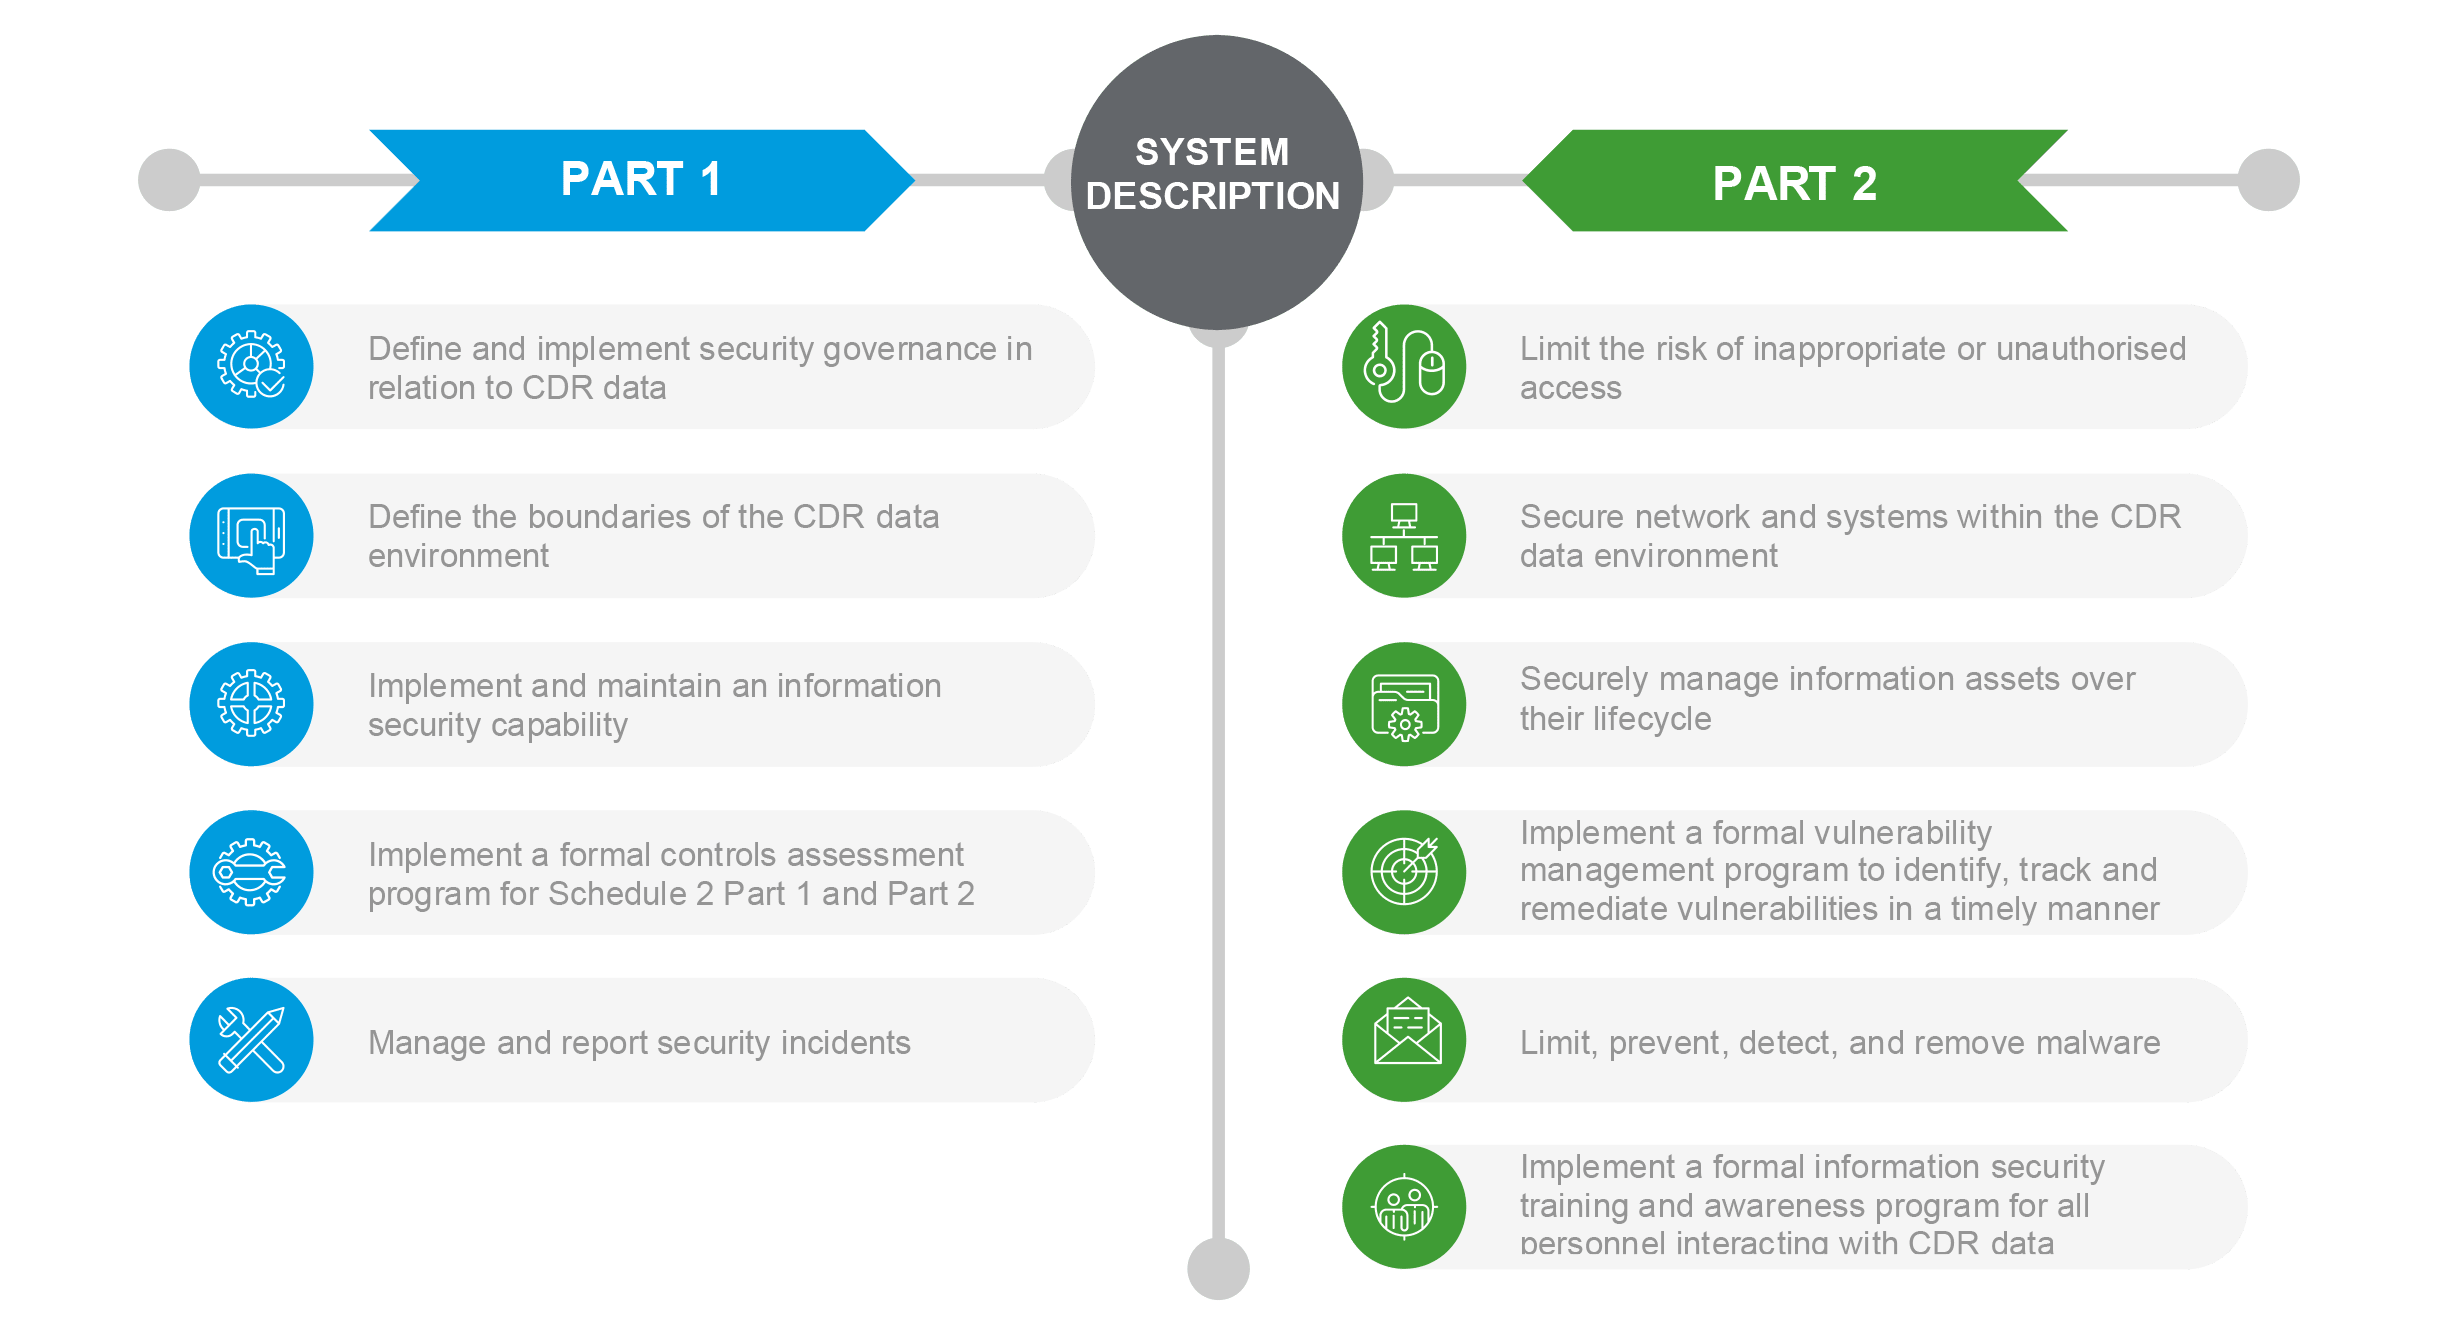 The CDR rules outline the controls required to manage these risks in Schedule 2 Part 1 (security governance) and Schedule 2 Part 2 (minimum control requirements).